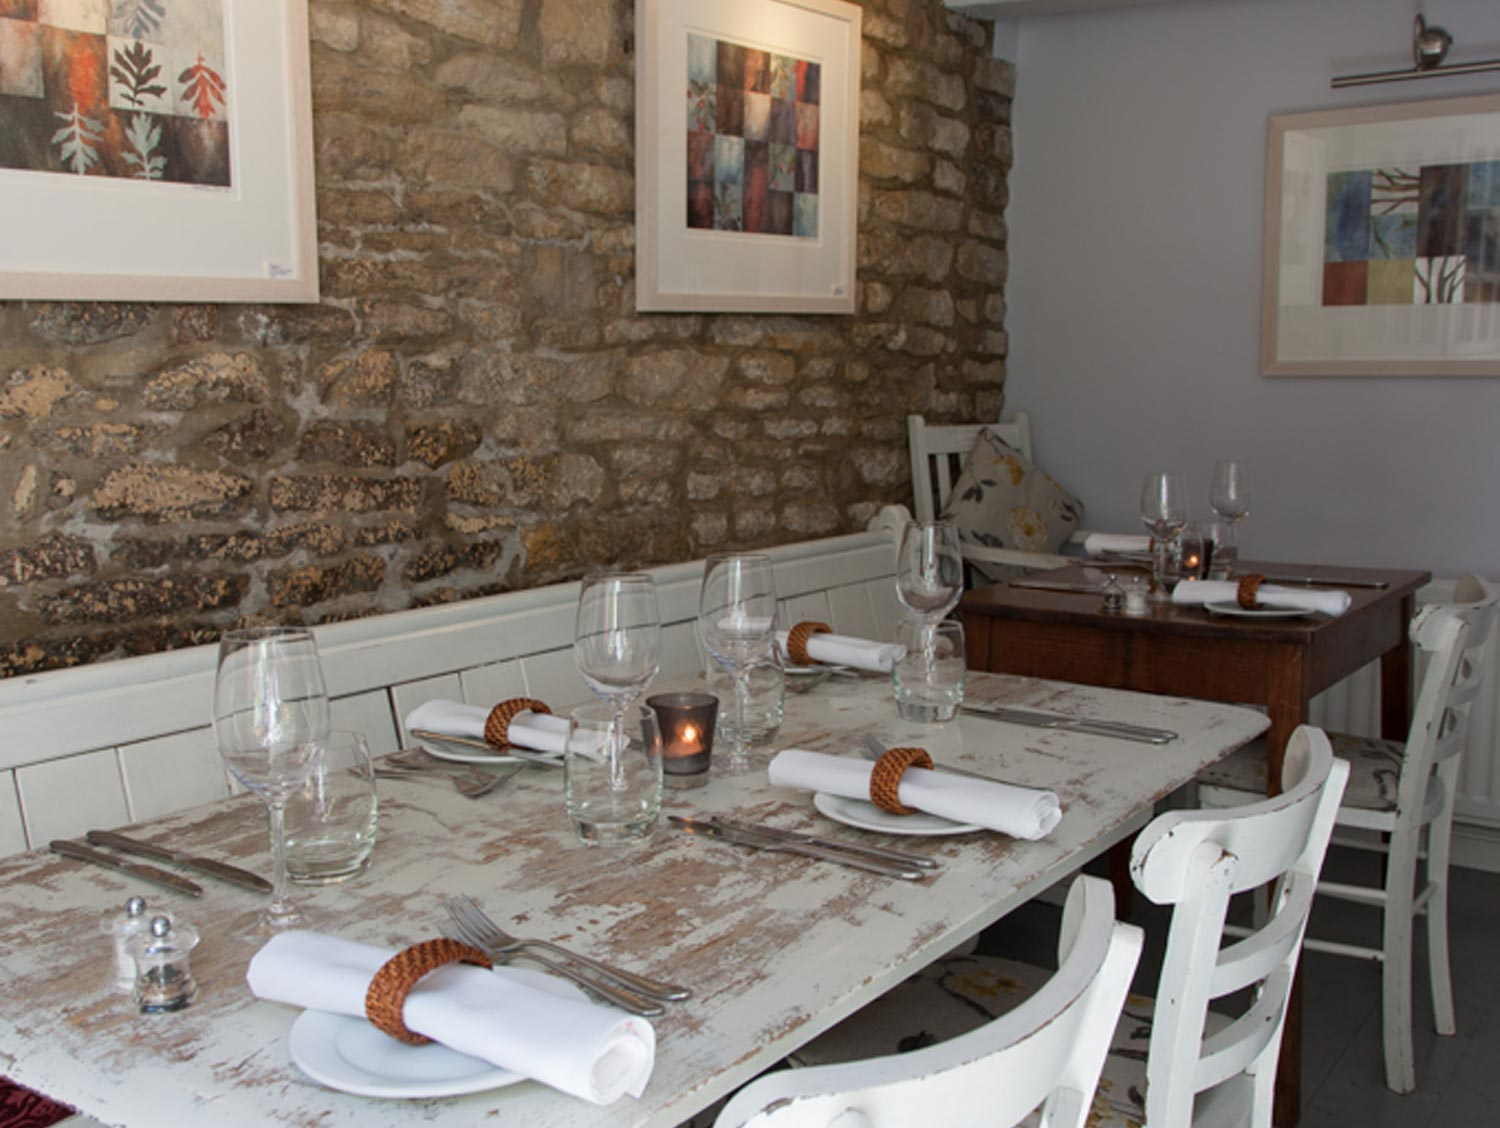 Wild Thyme Restaurant in Chipping Norton, Oxfordshire